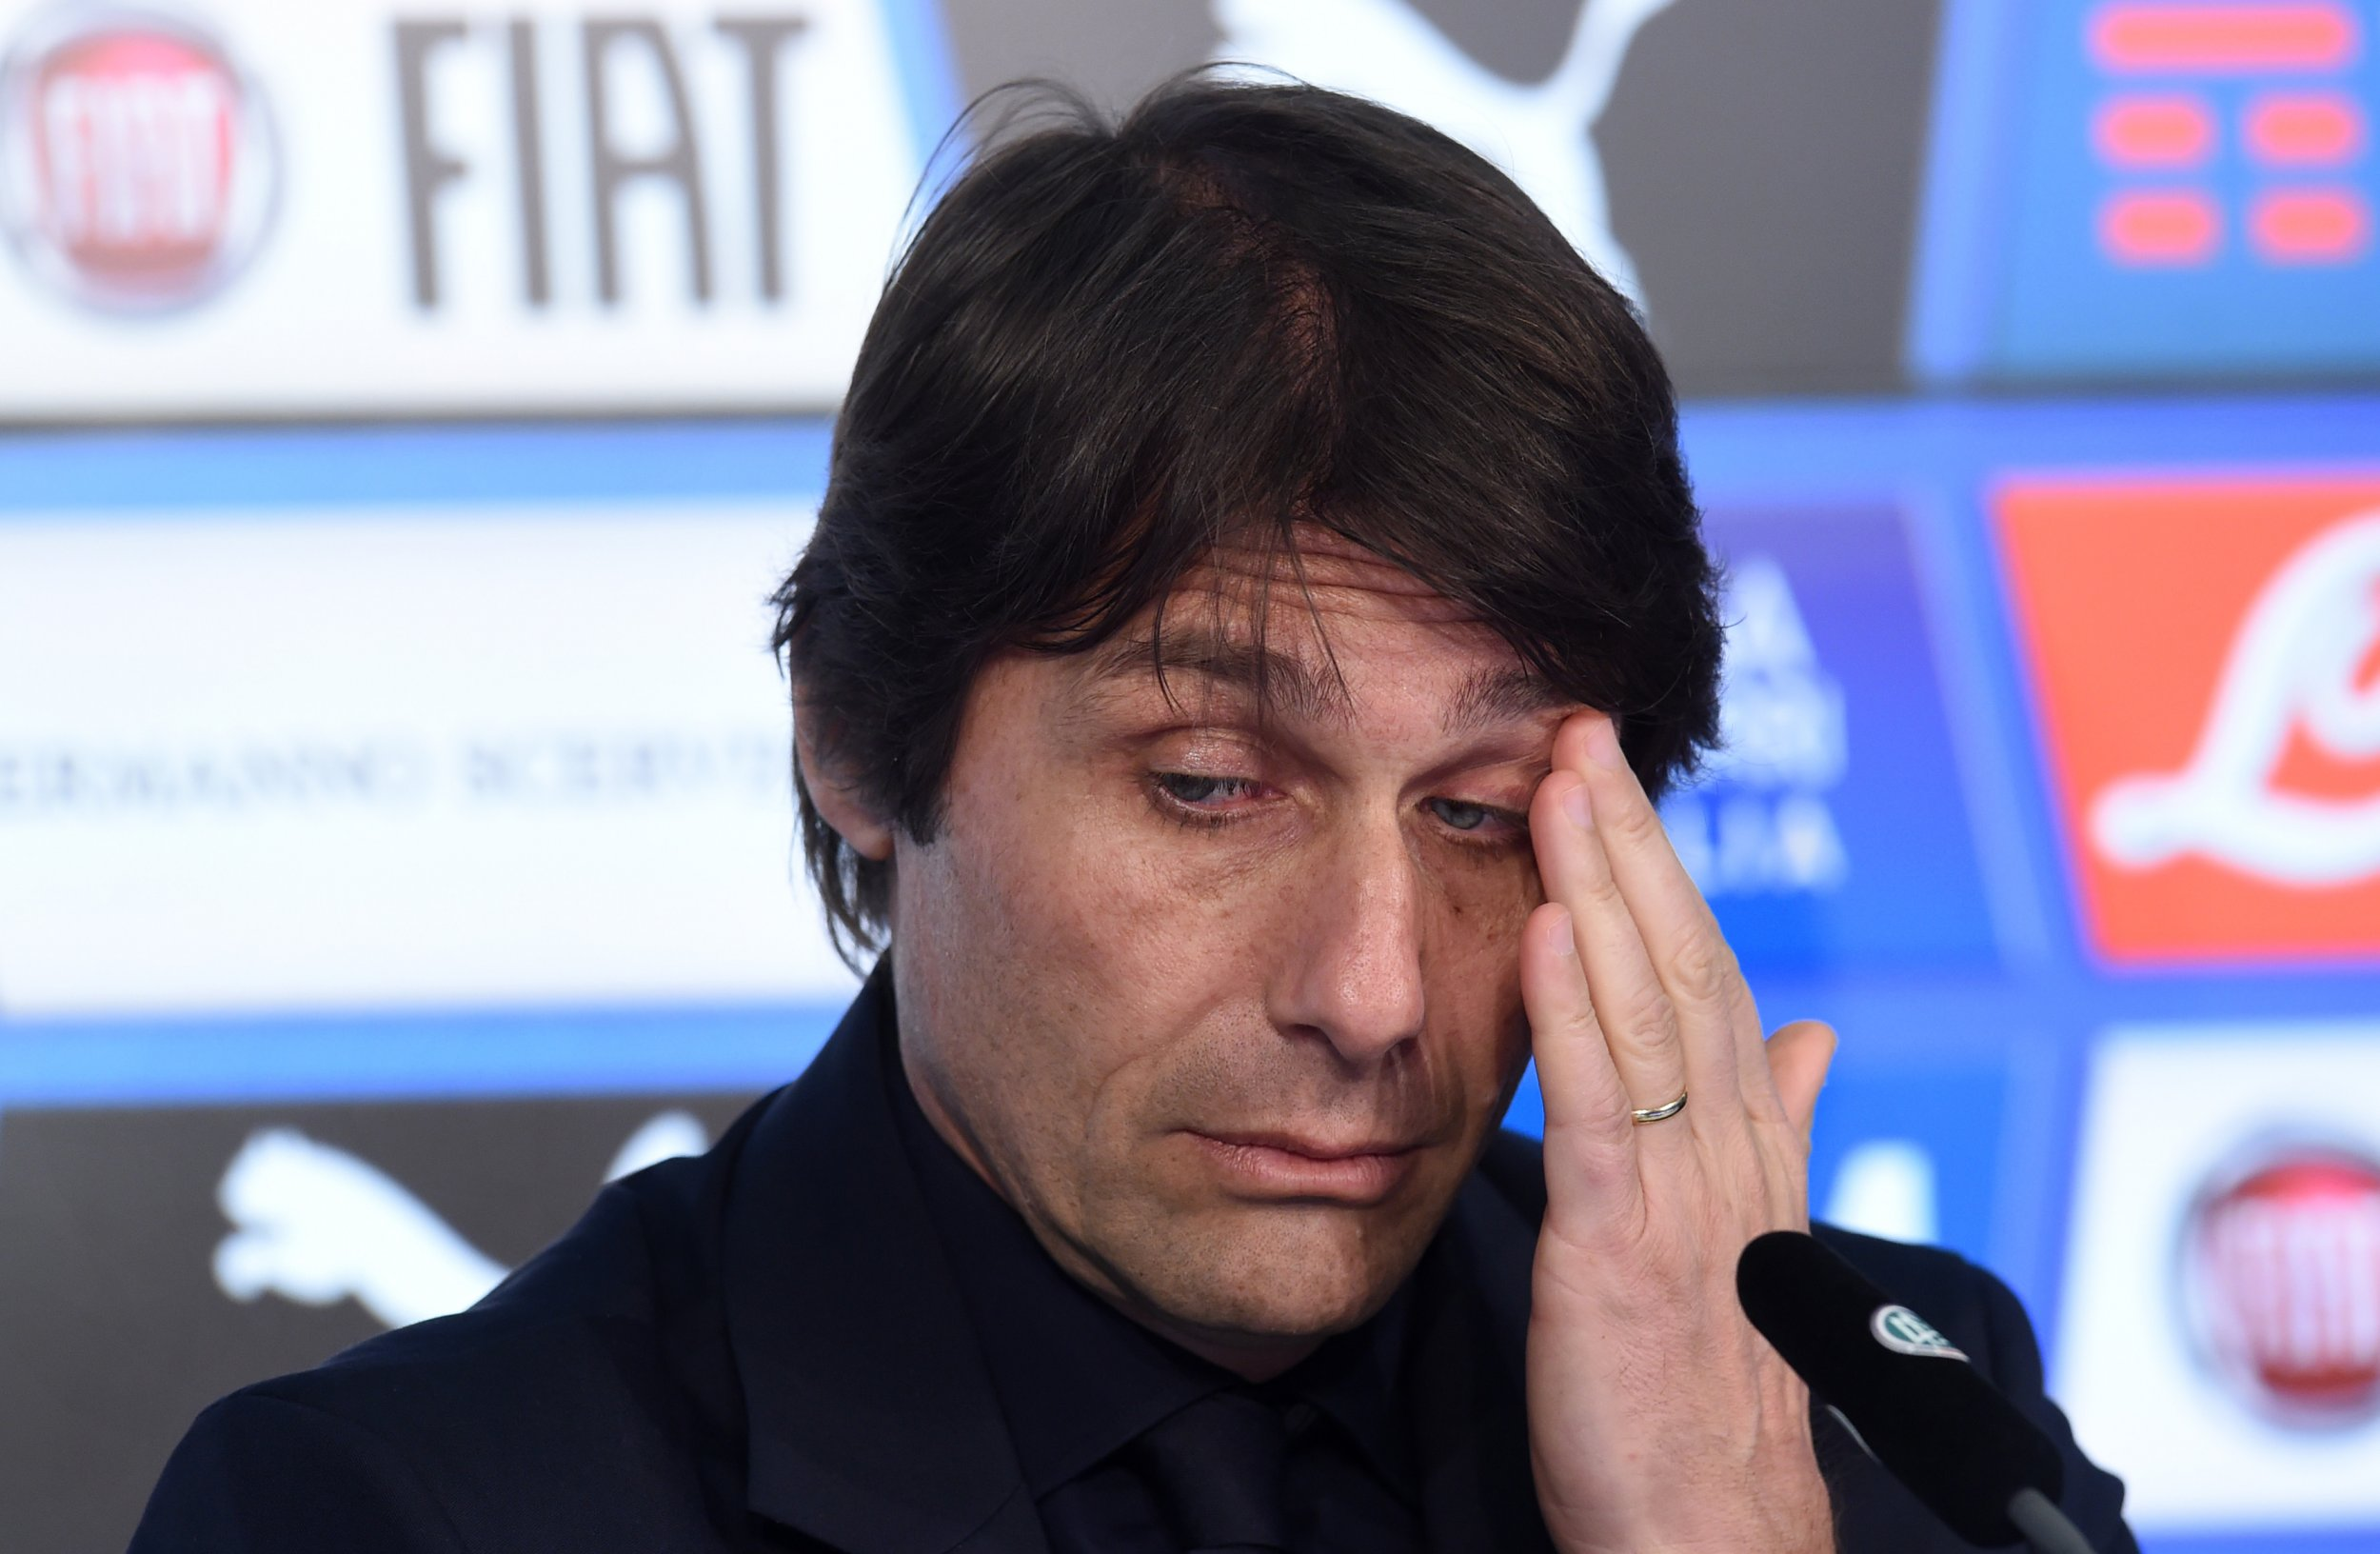 Antonio Conte has been confirmed as the new Chelsea manager.